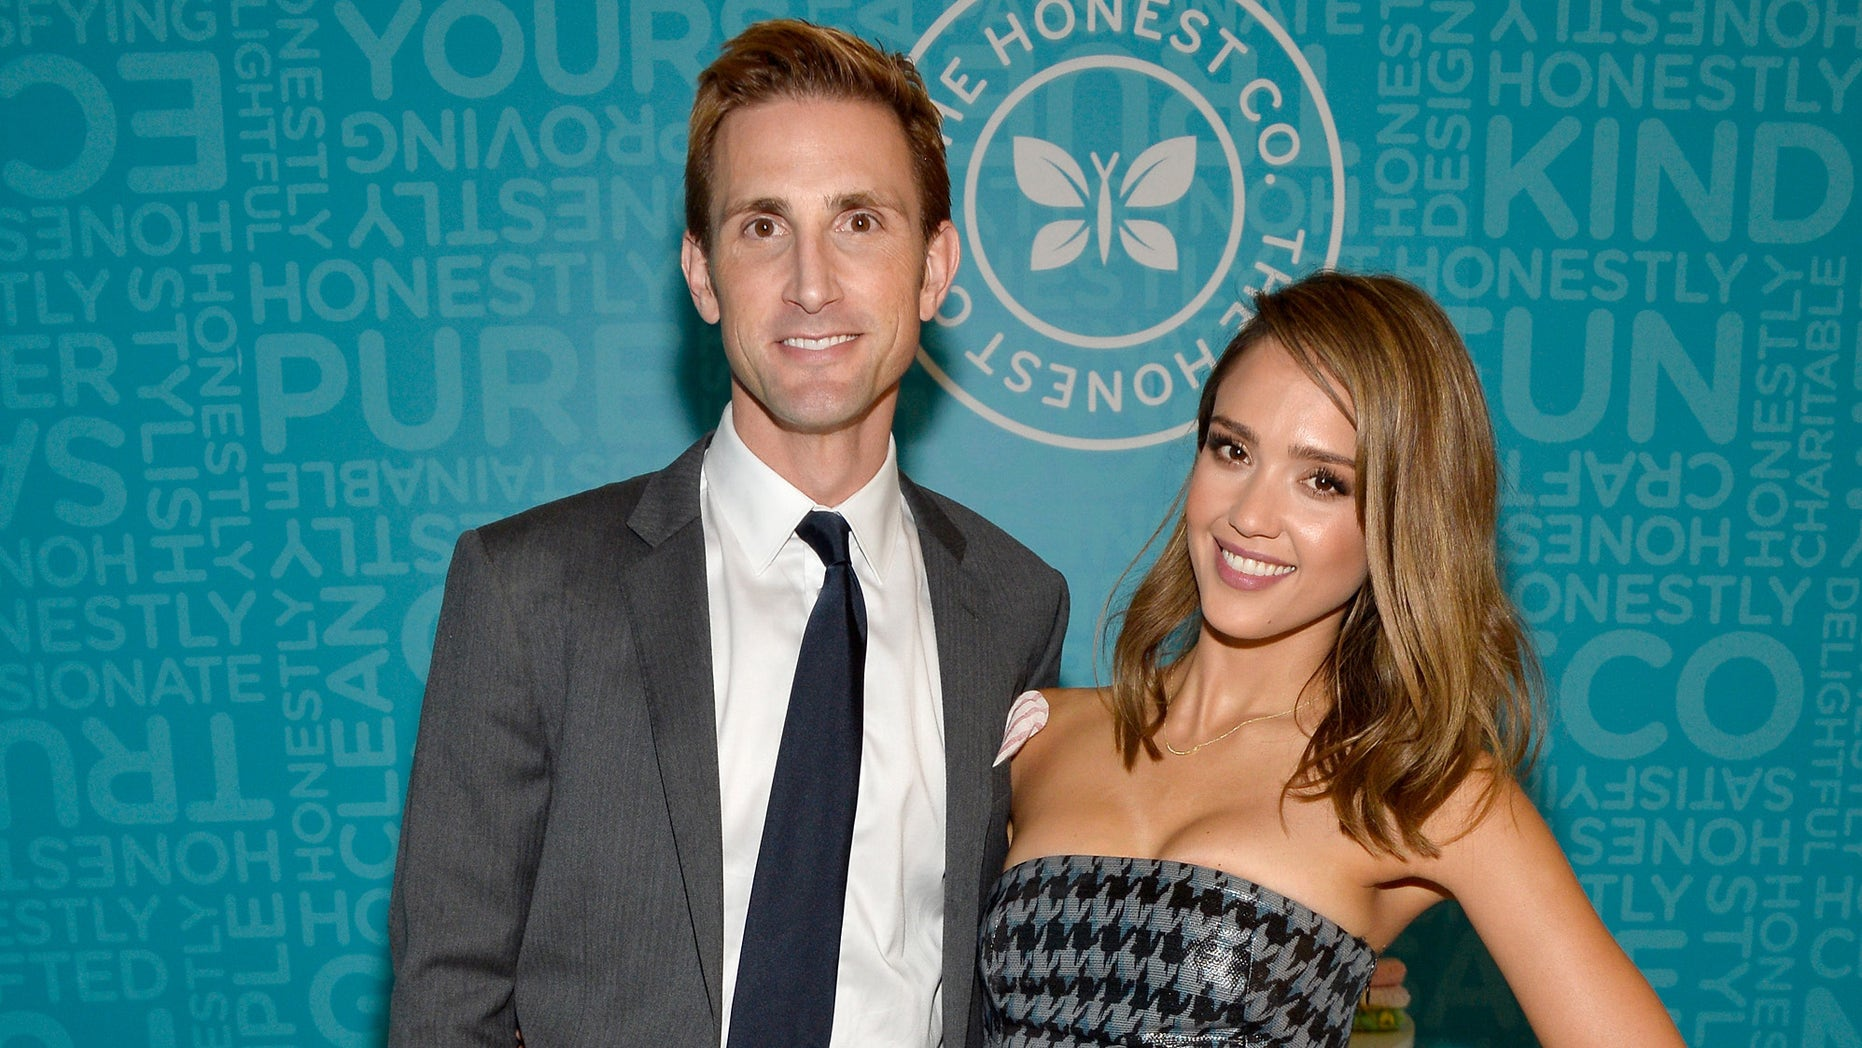 The Honest Company's Christopher Gavigan and Jessica Alba in a 2013 file photo.